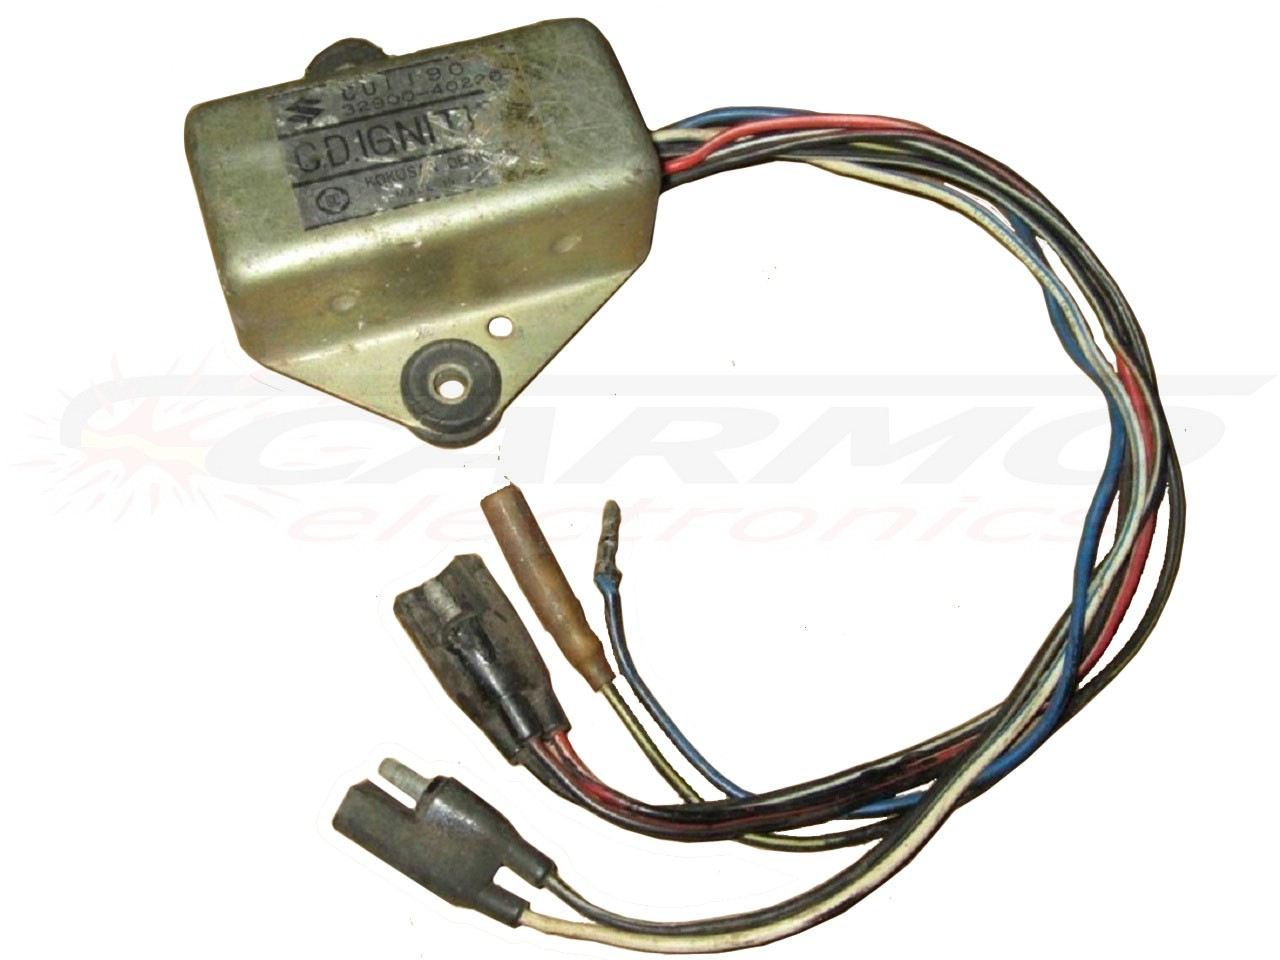 Suzuki Carmo Electronics The Place For Parts Or Dr250 Wiring Diagram Rm125 Rm100 Igniter Ignition Module Cdi Tci Box 32900 40220 Kokusan Denki